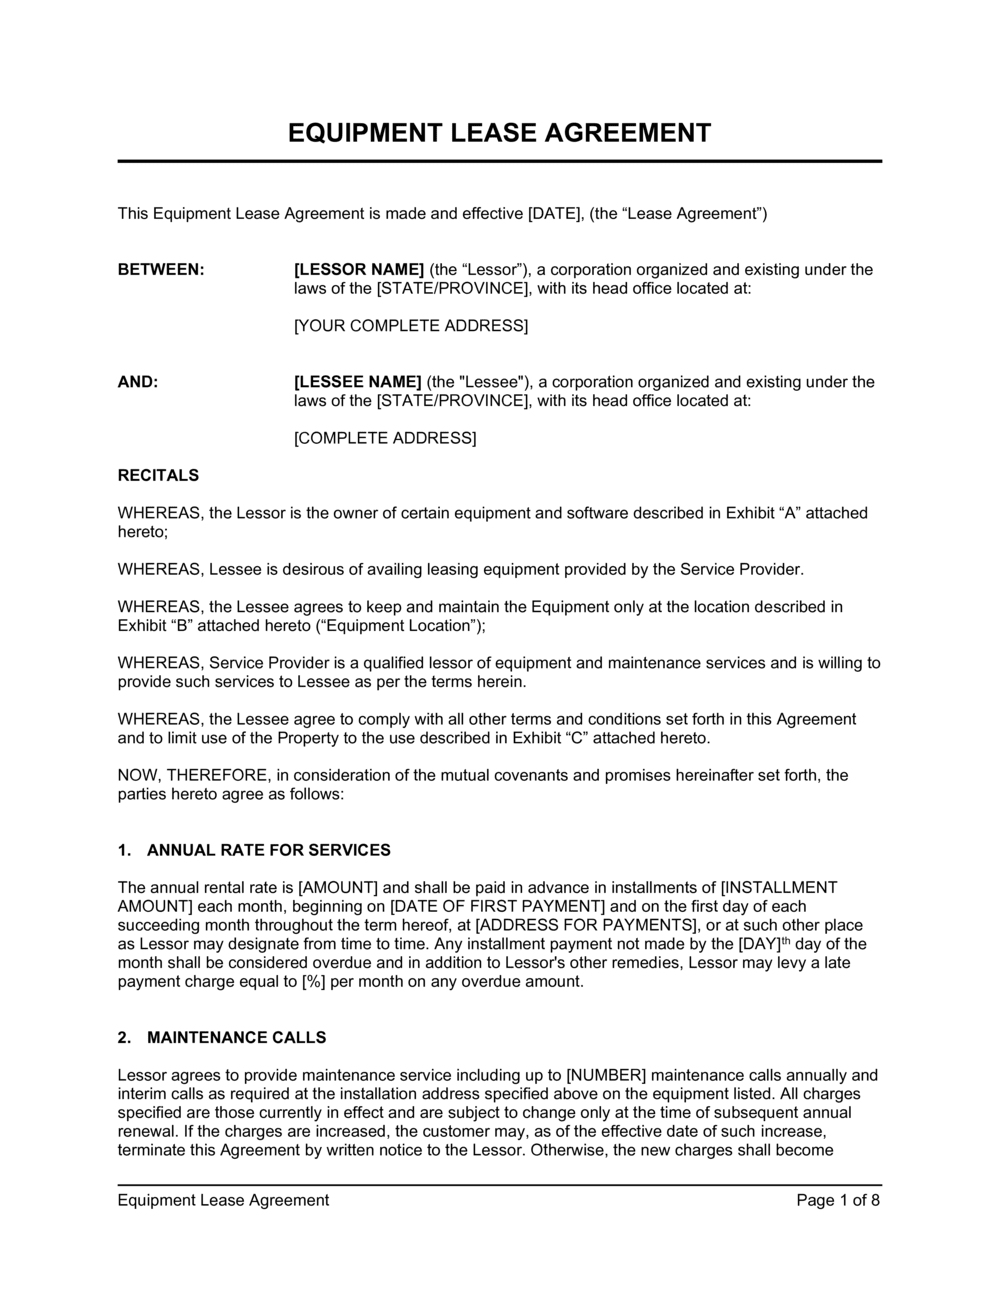 Business-in-a-Box's Equipment Lease Agreement Long Template